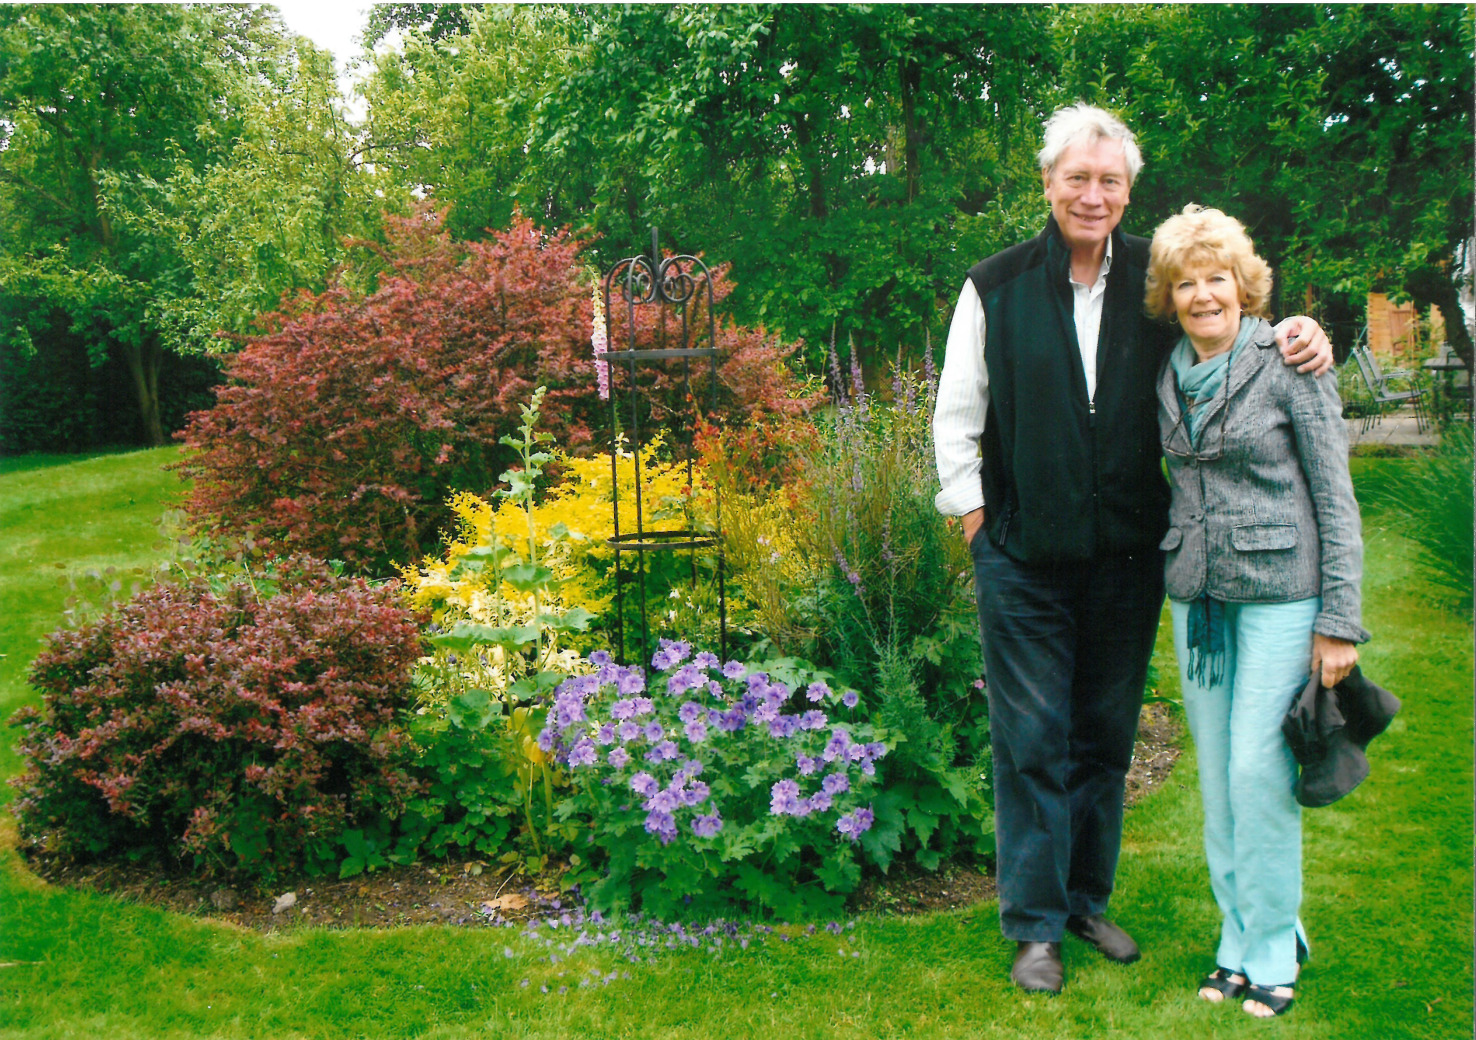 Richard Nelson Perham 27 April 193714 February 2015 Biographical Prokaryotic And Eukaryotic Cells Diagram Front Yard Landscaping Download Figure